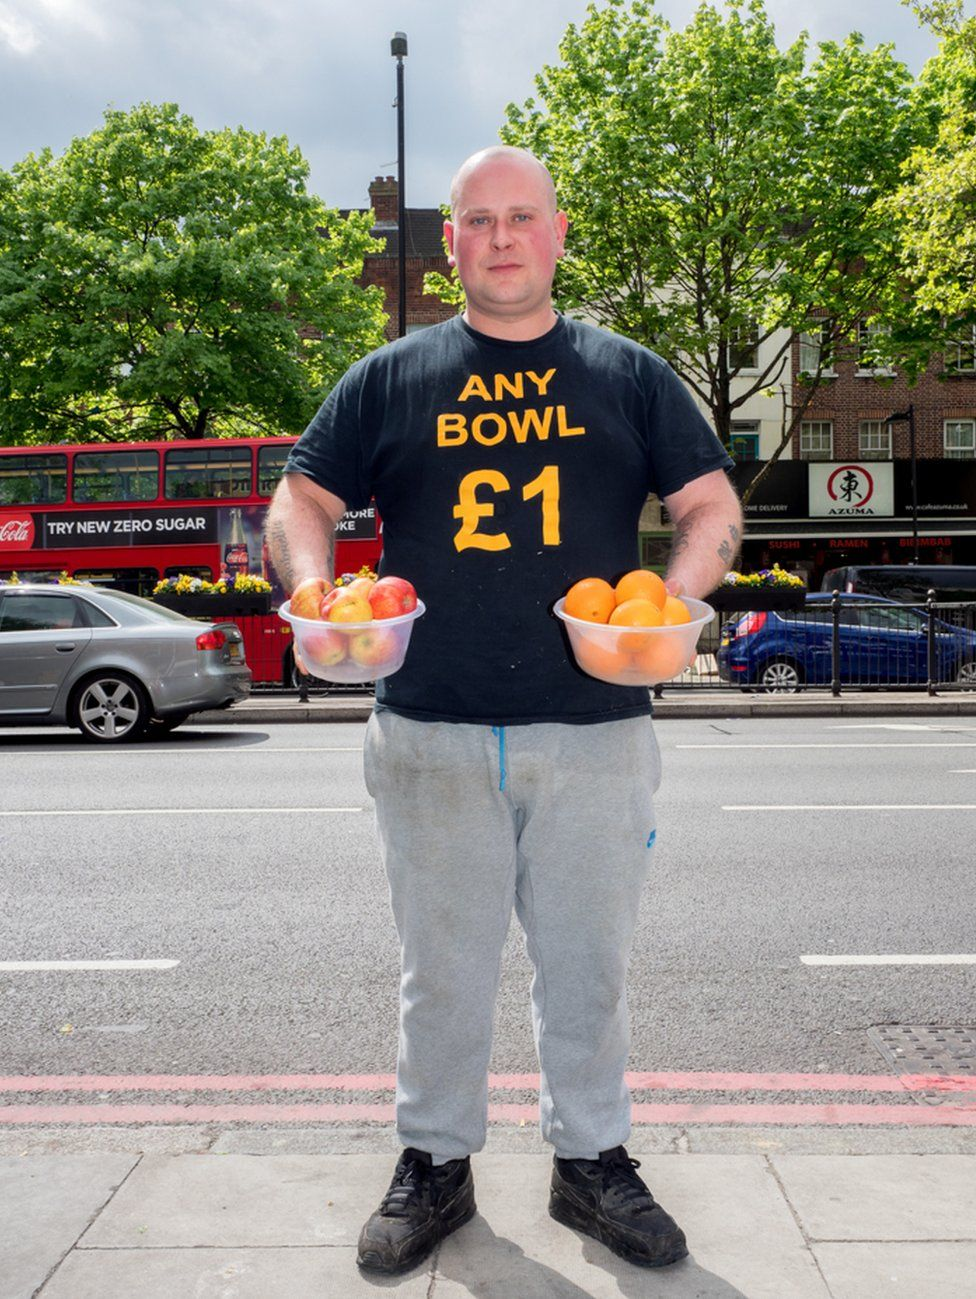 Mark, 32, from Essex selling fruit and vegetables. Holloway, London.